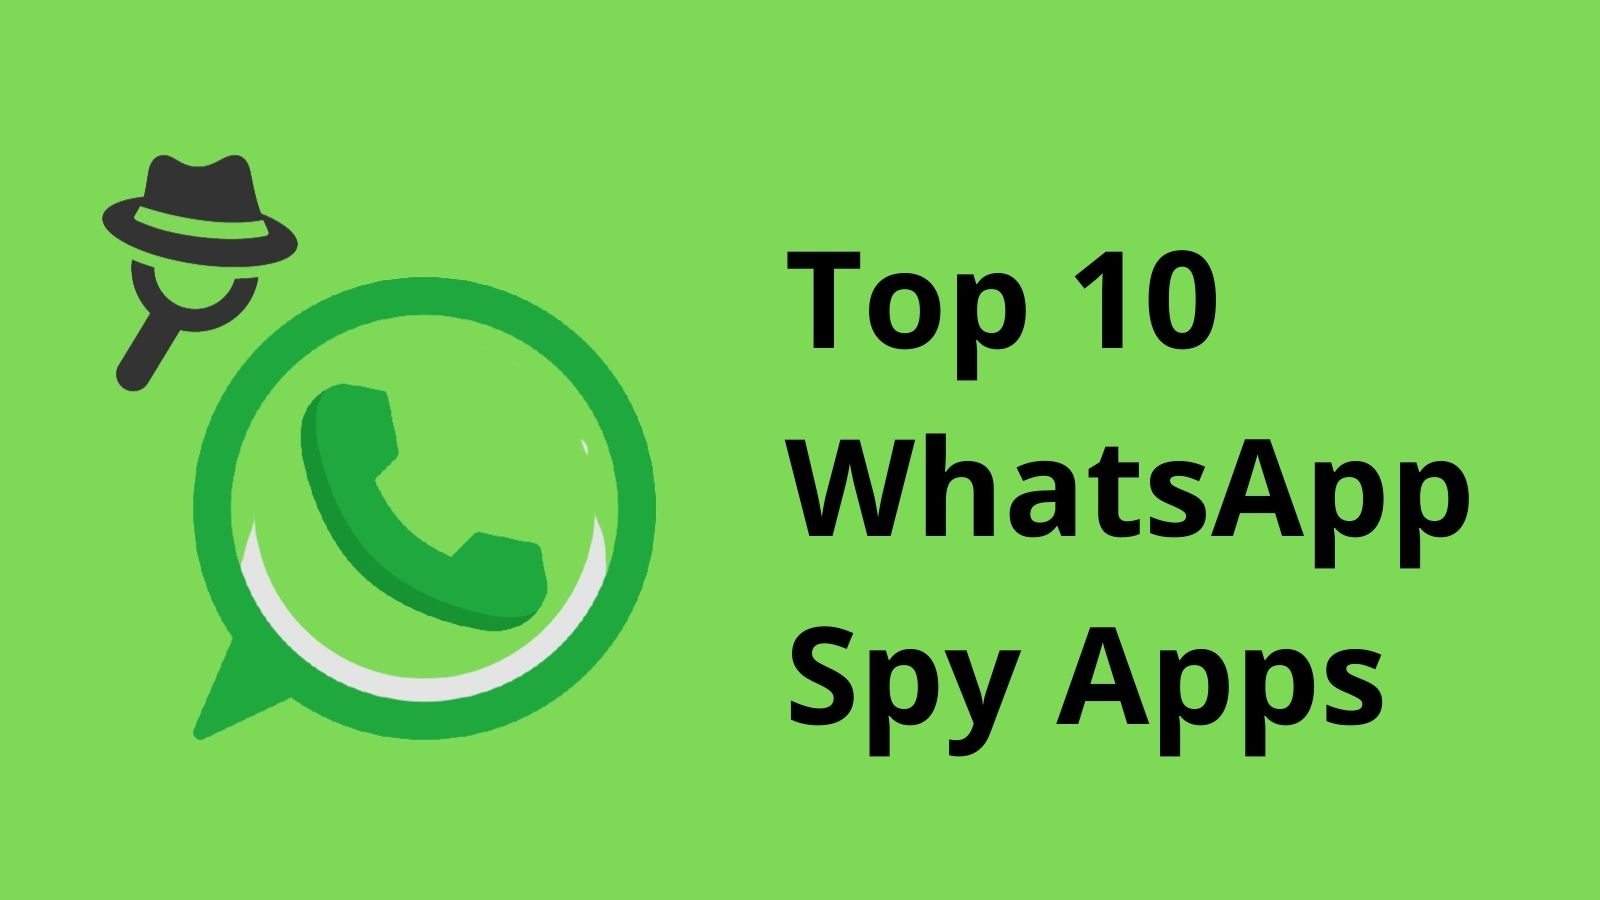 The way to spy on whatsapp conversations without installing programs (spiare conversazioni whatsapp senza installare programmi) and in real time post thumbnail image